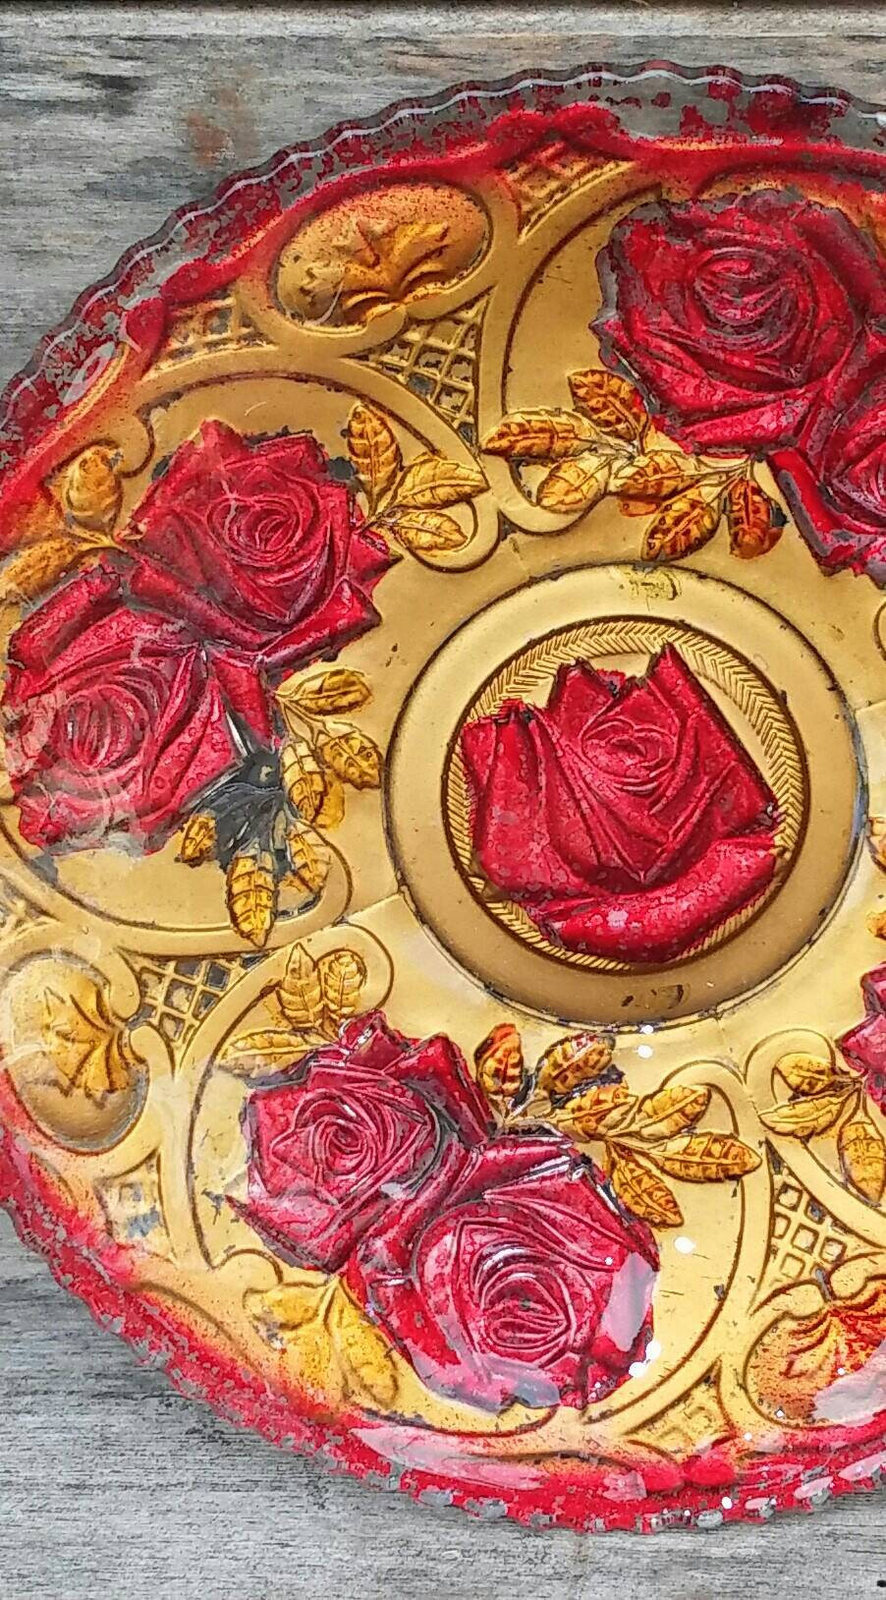 Indiana Glass 1920s Plate, Roses in the Snow Goofus Glass